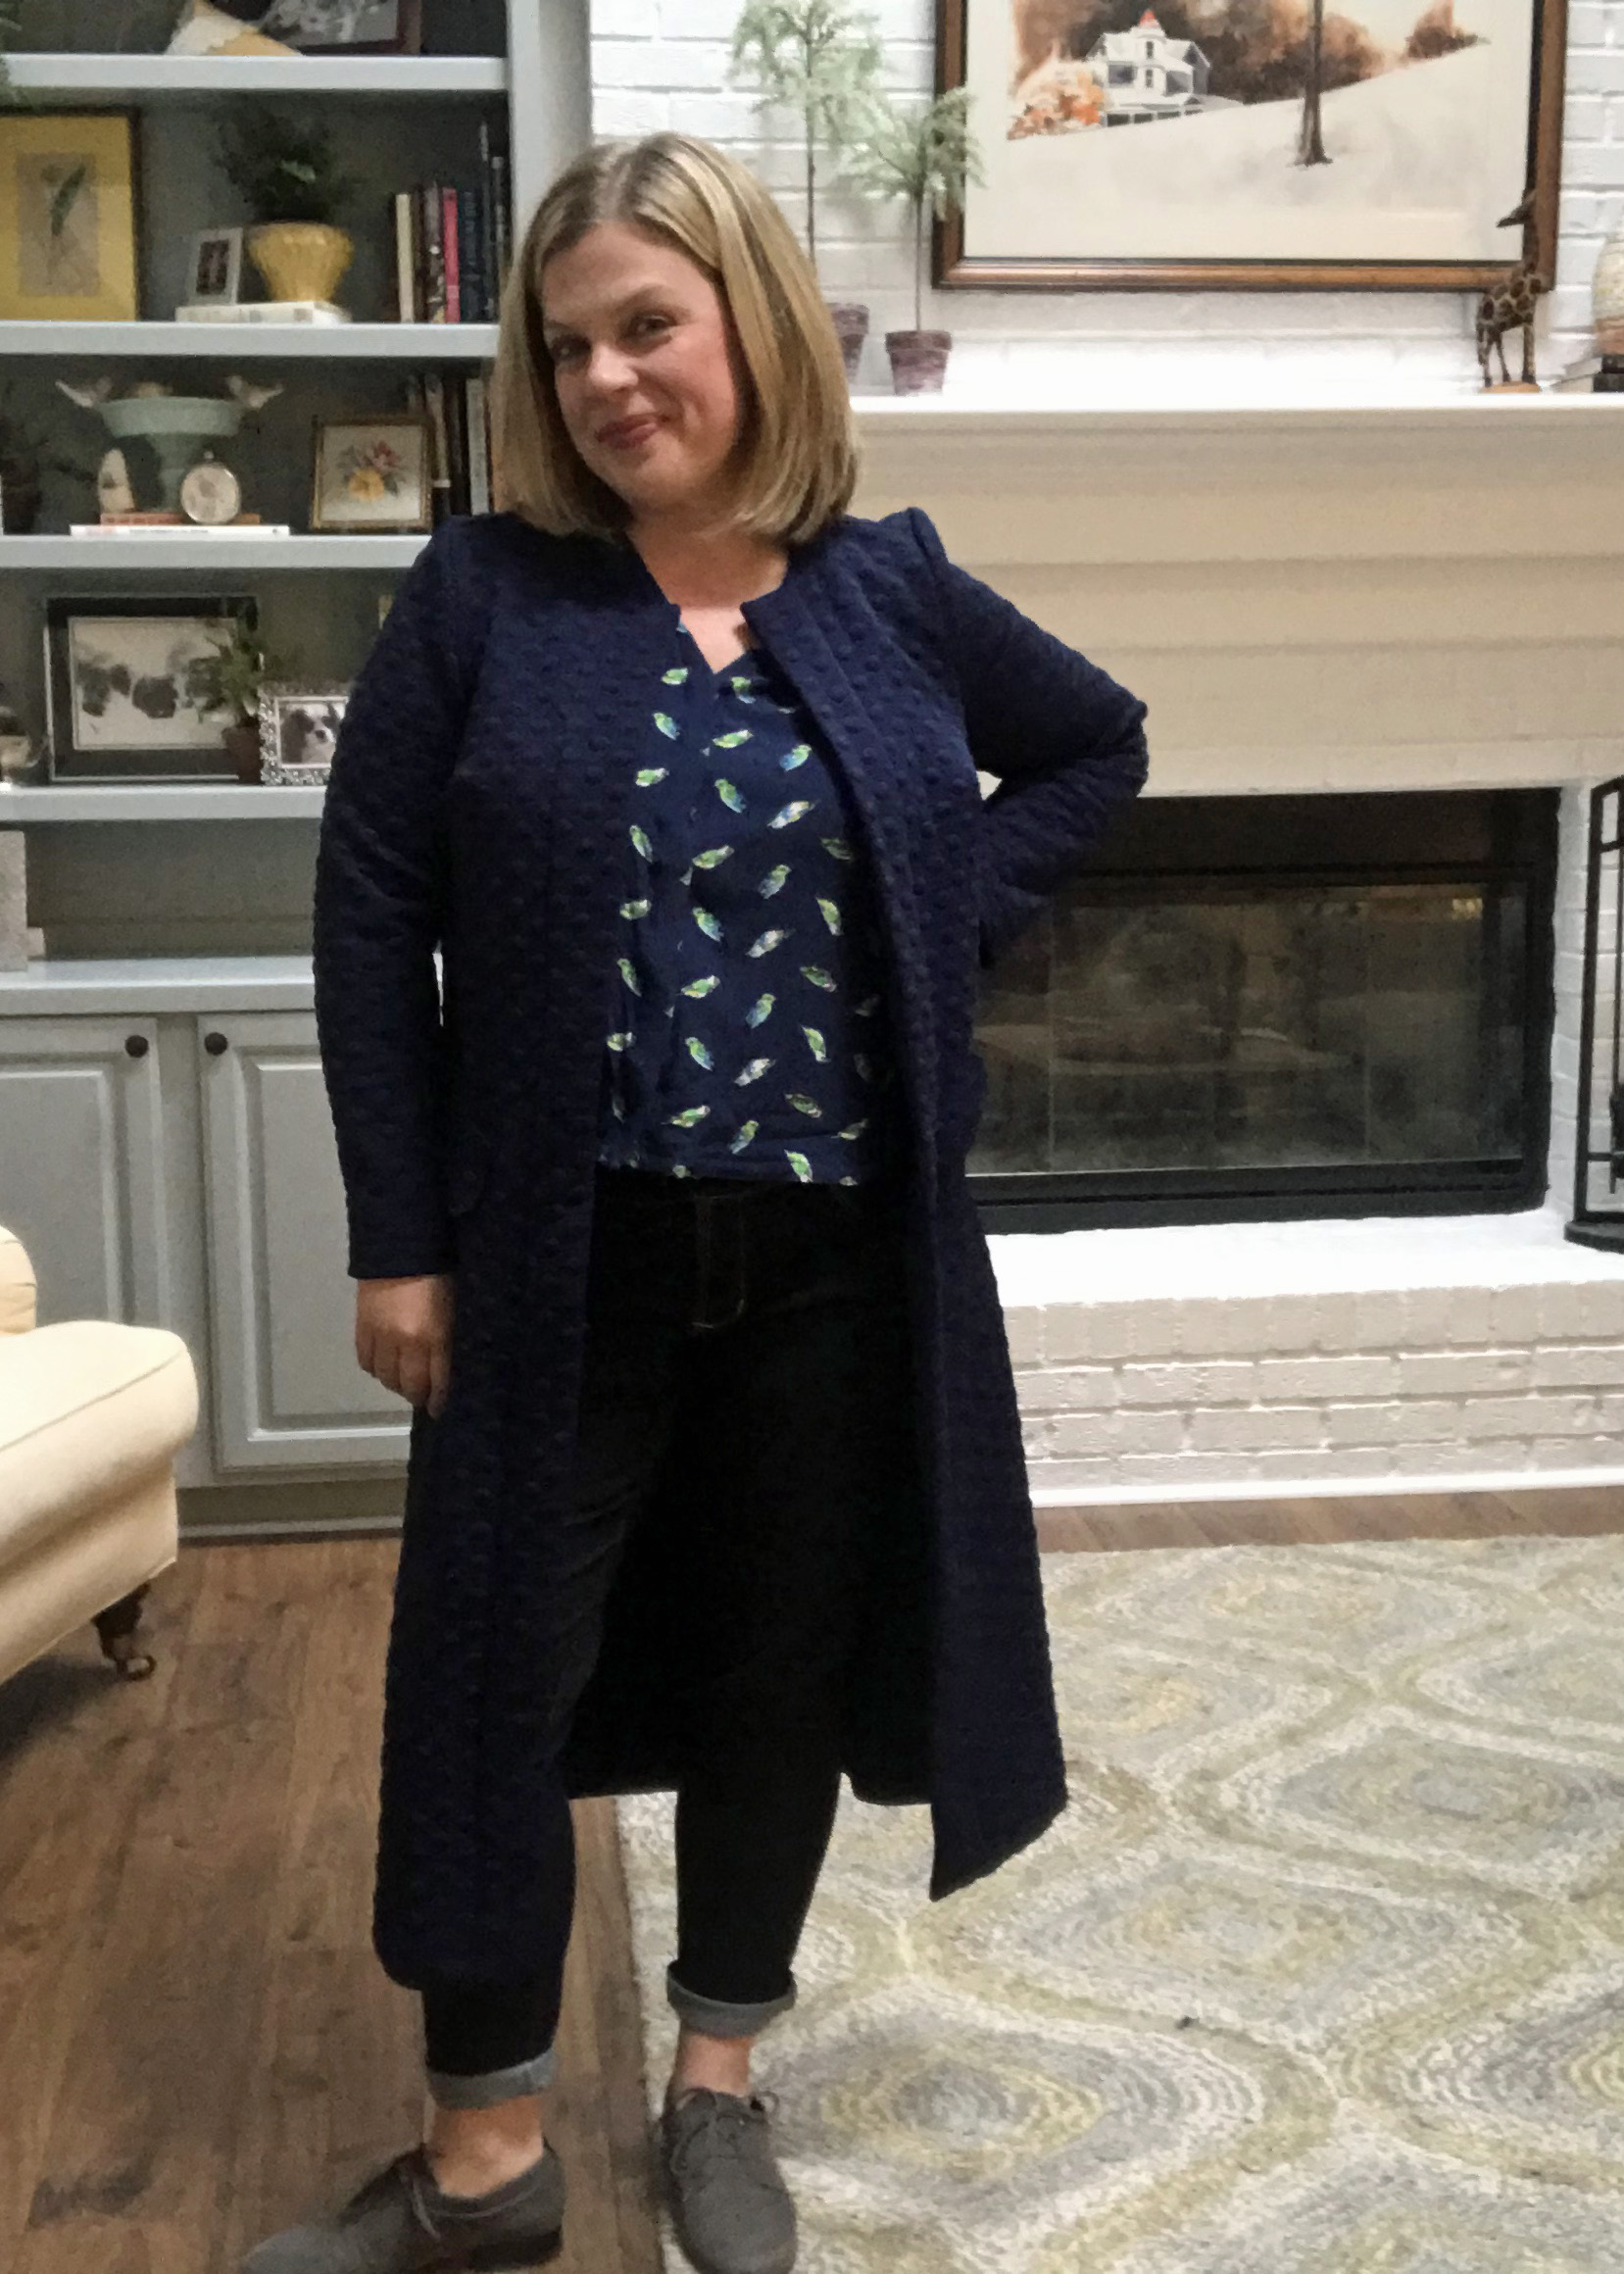 S8222 Jeans with SOI Dana Blouse and S8177 Cardigan